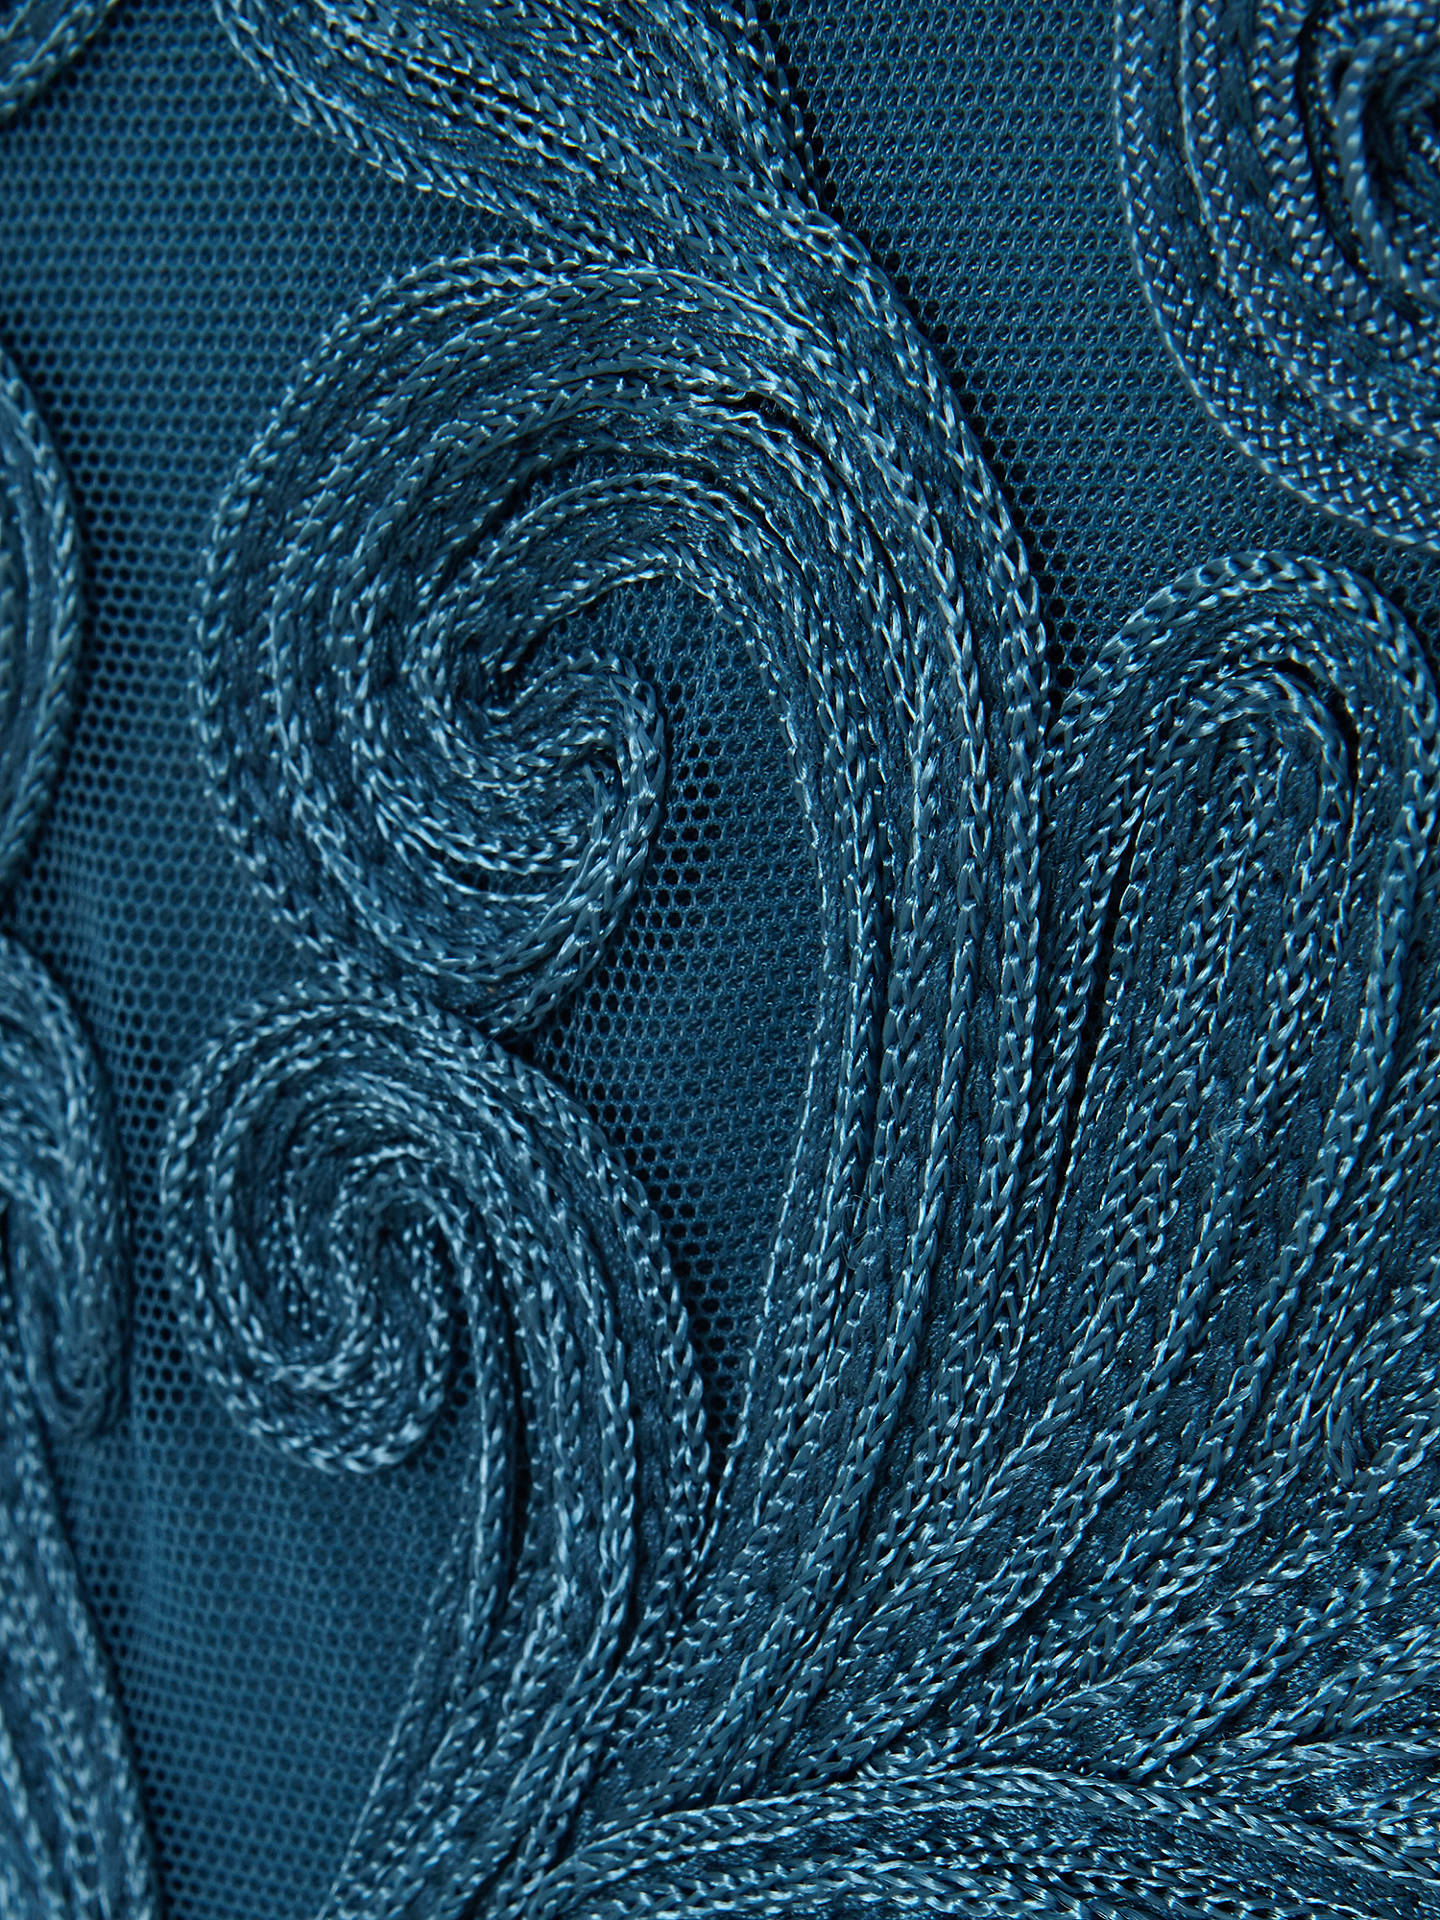 BuyPhase Eight Indra Tapework Dress, Peacock, 8 Online at johnlewis.com